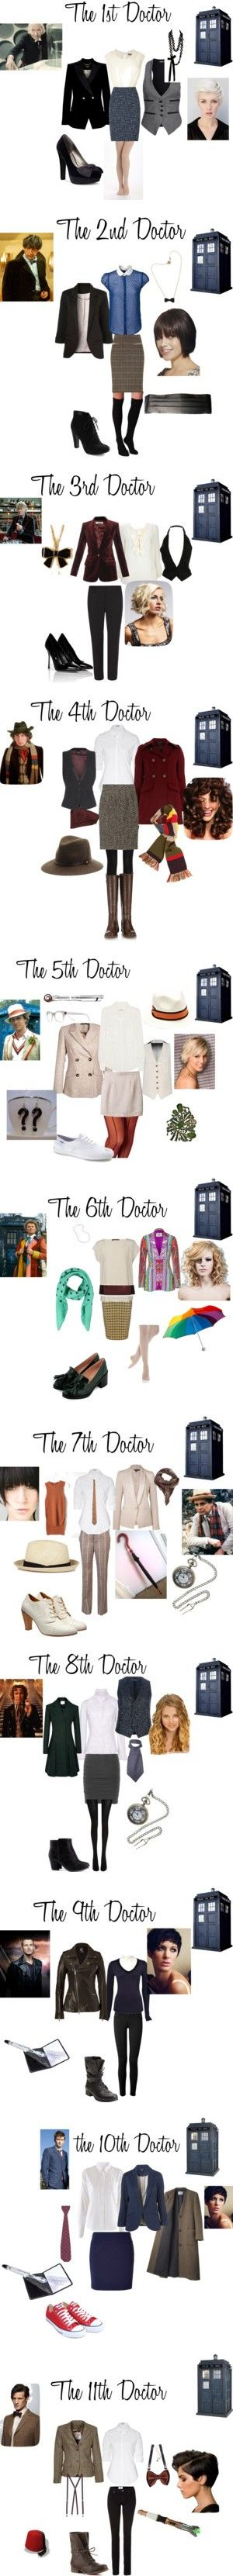 All the Doctors on Polyvore. If you need ideas on how to dress like The Doctor, this looks like a great place to start!